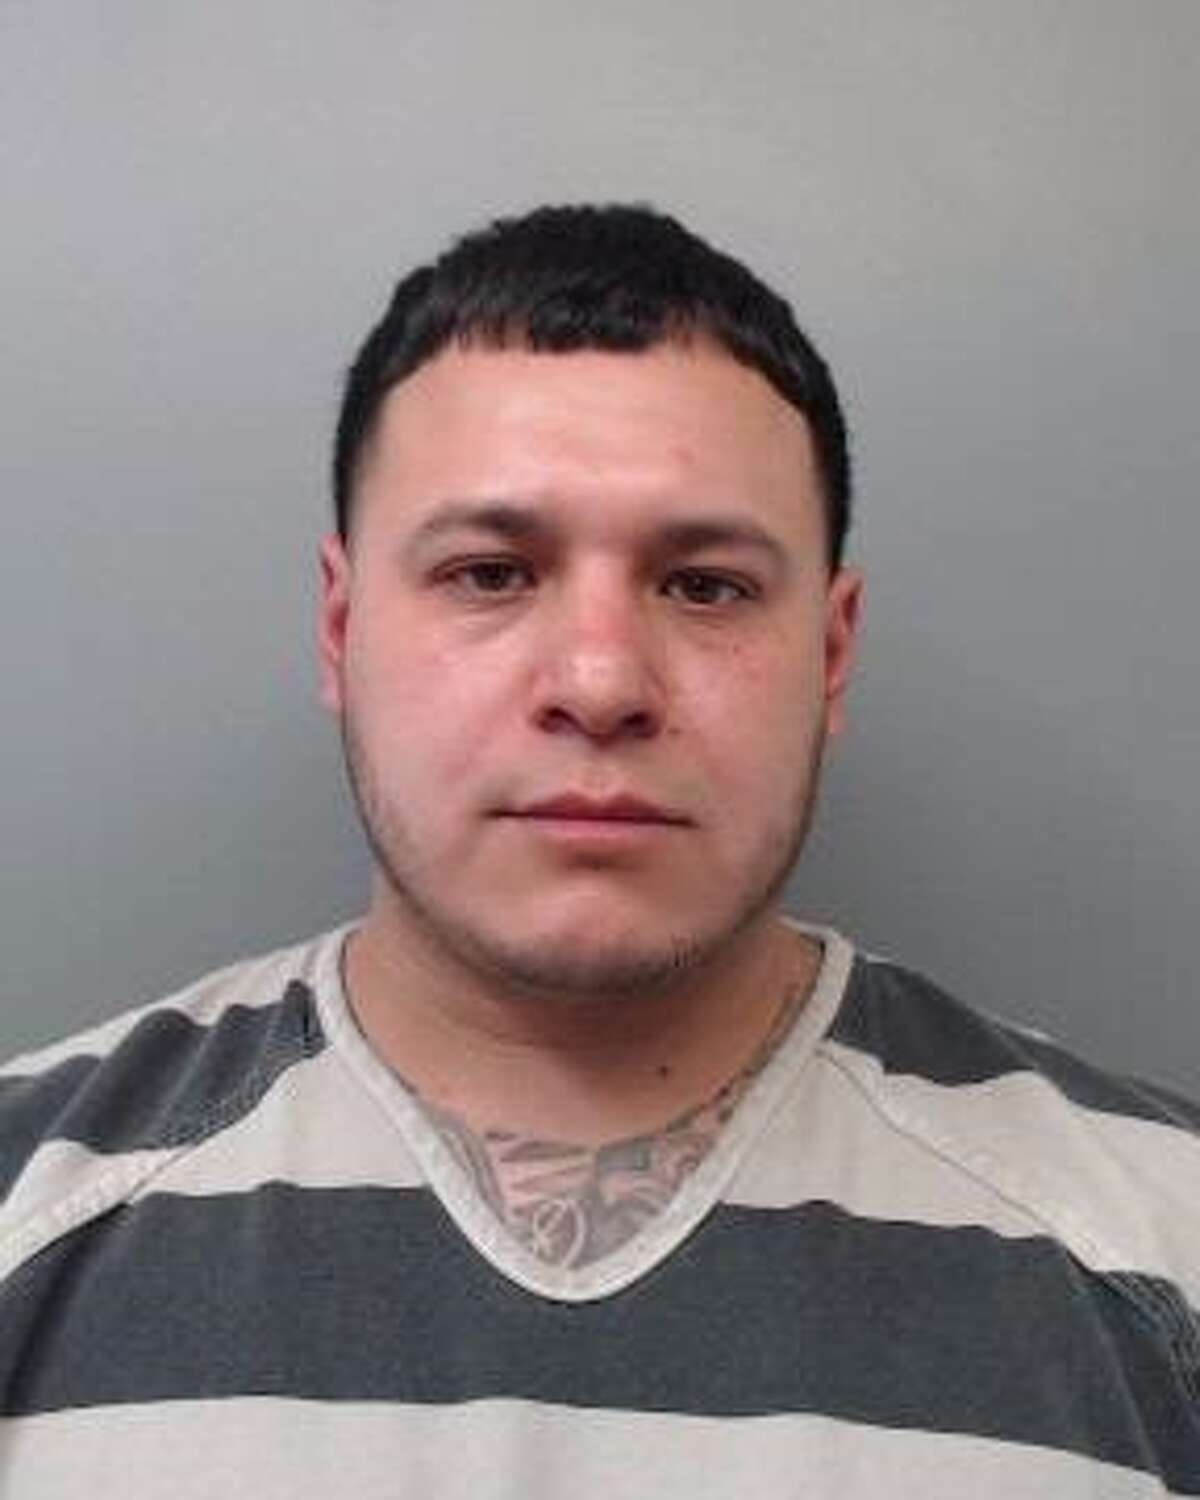 Roy Ramirez, 25, was arrested and charged with reckless driving.